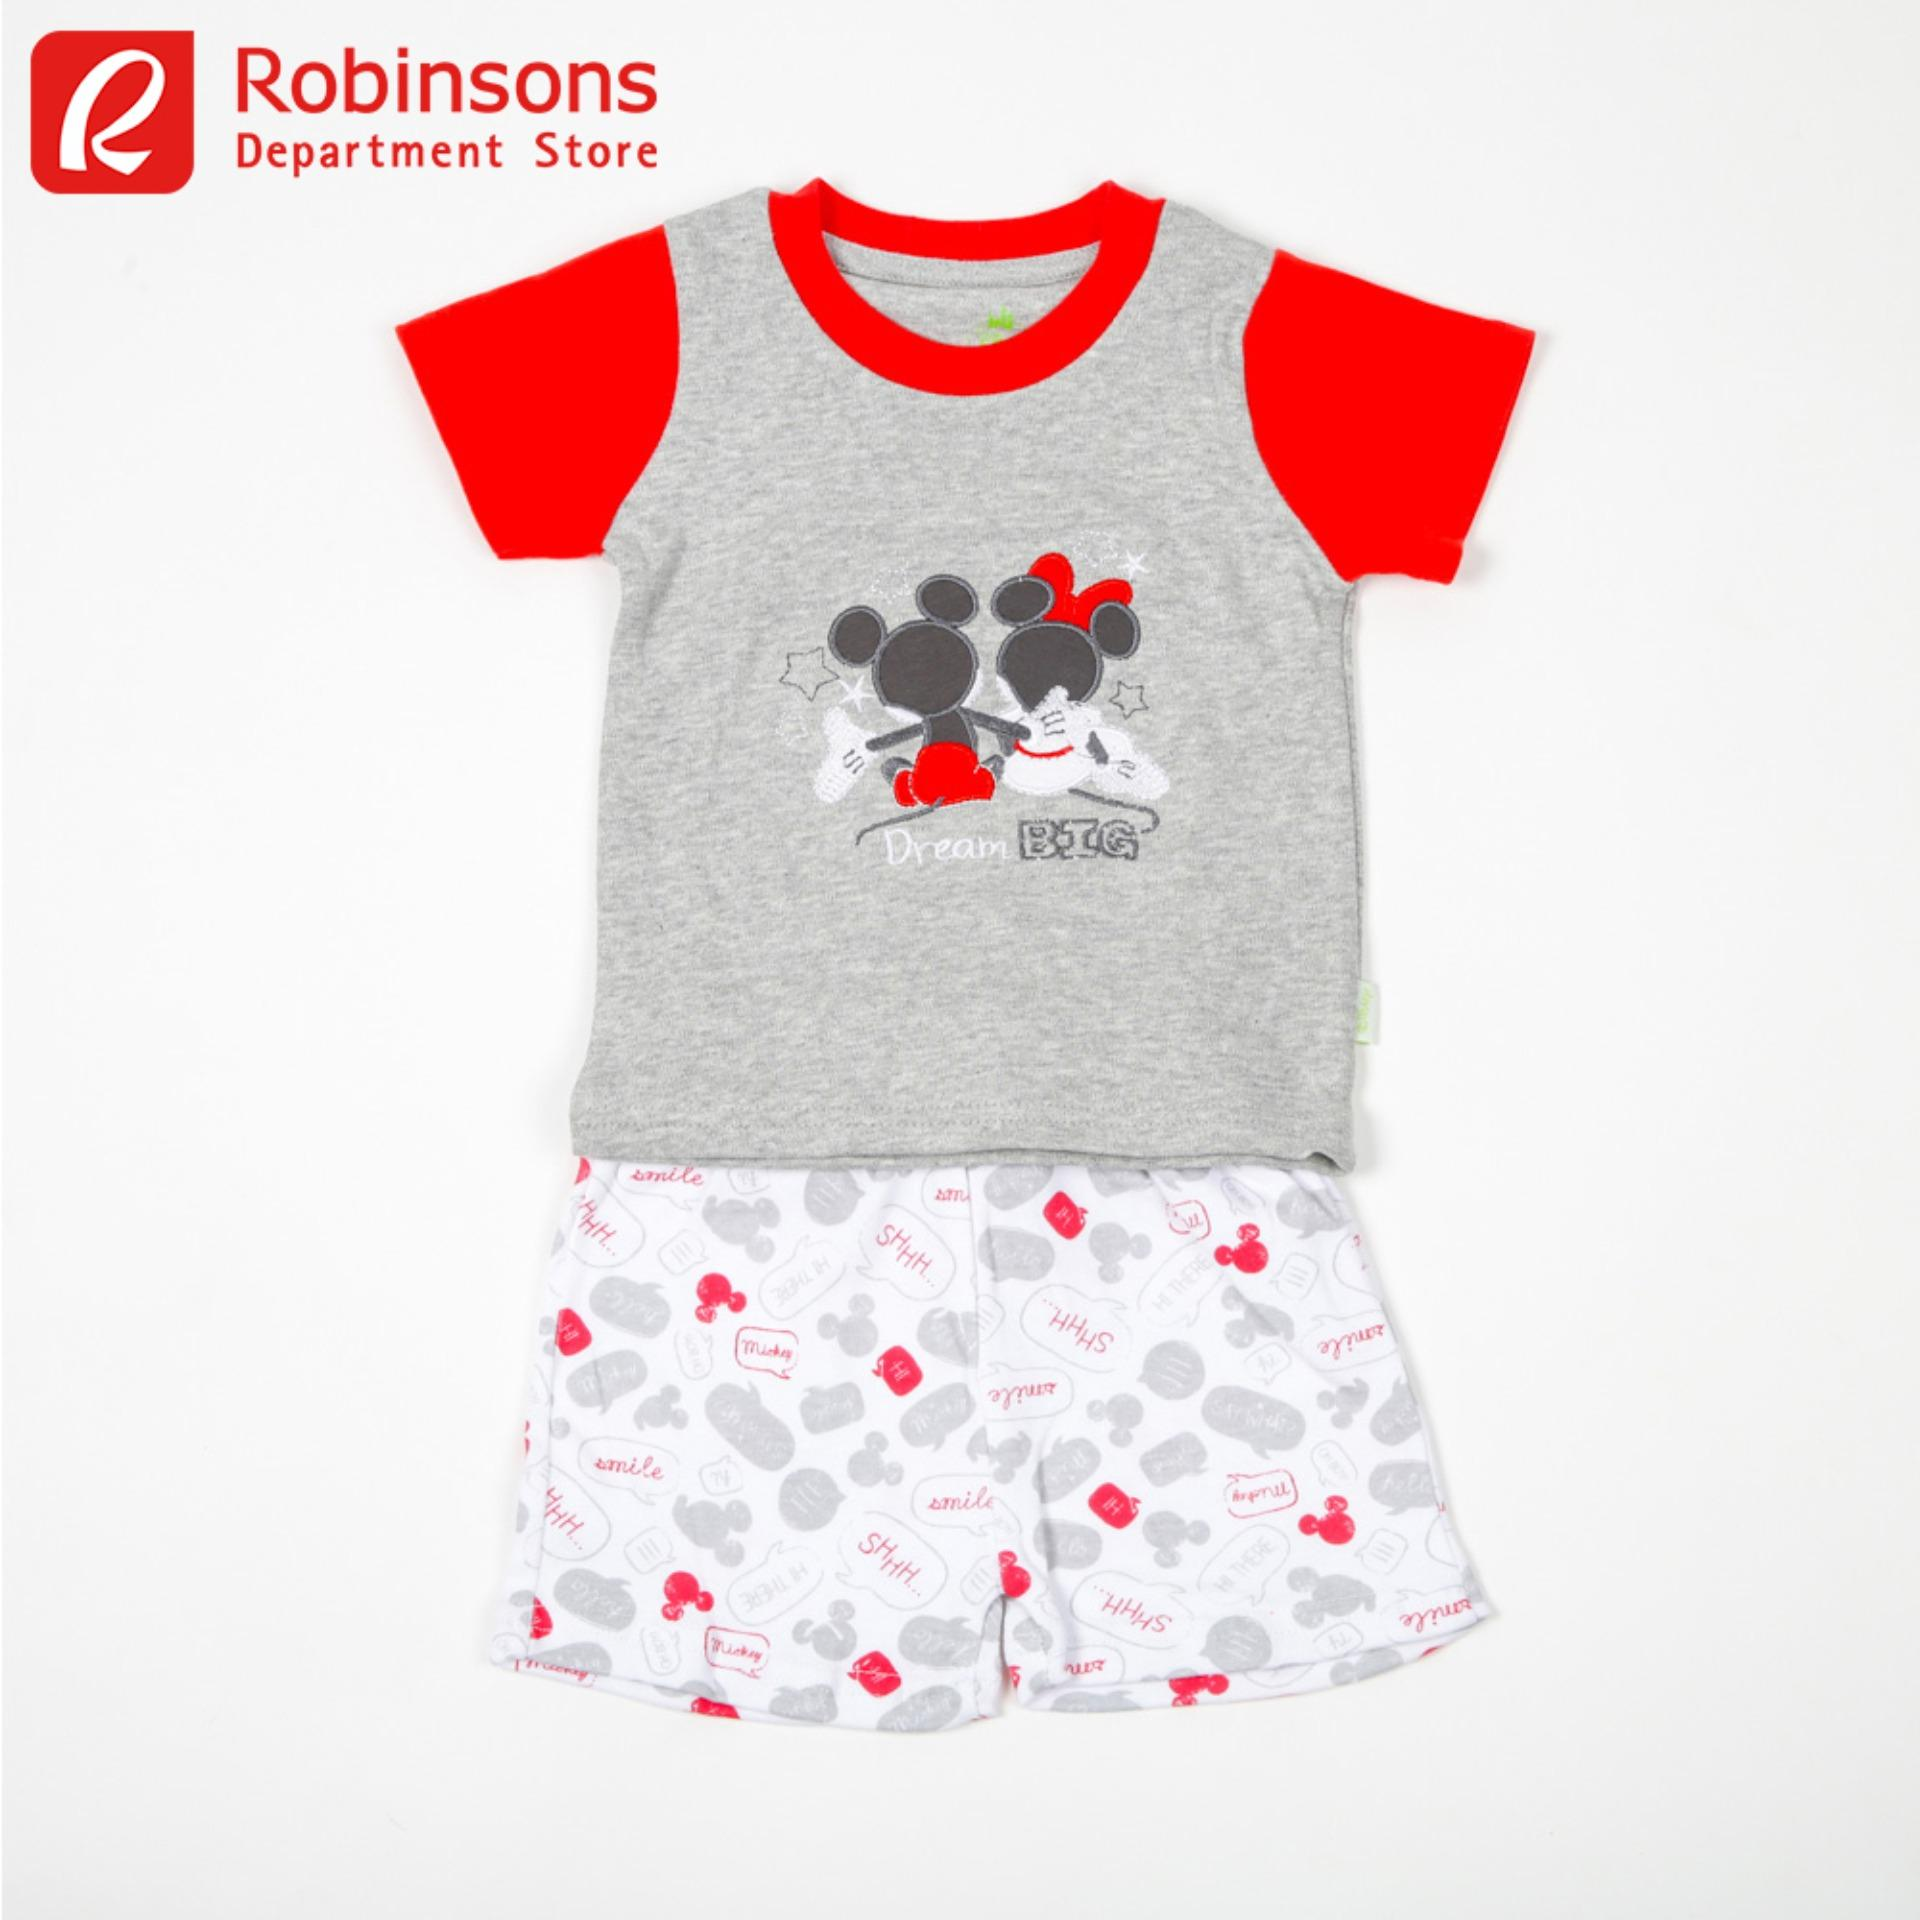 a73169c9acf Baby Clothes for sale - Baby Clothing online brands